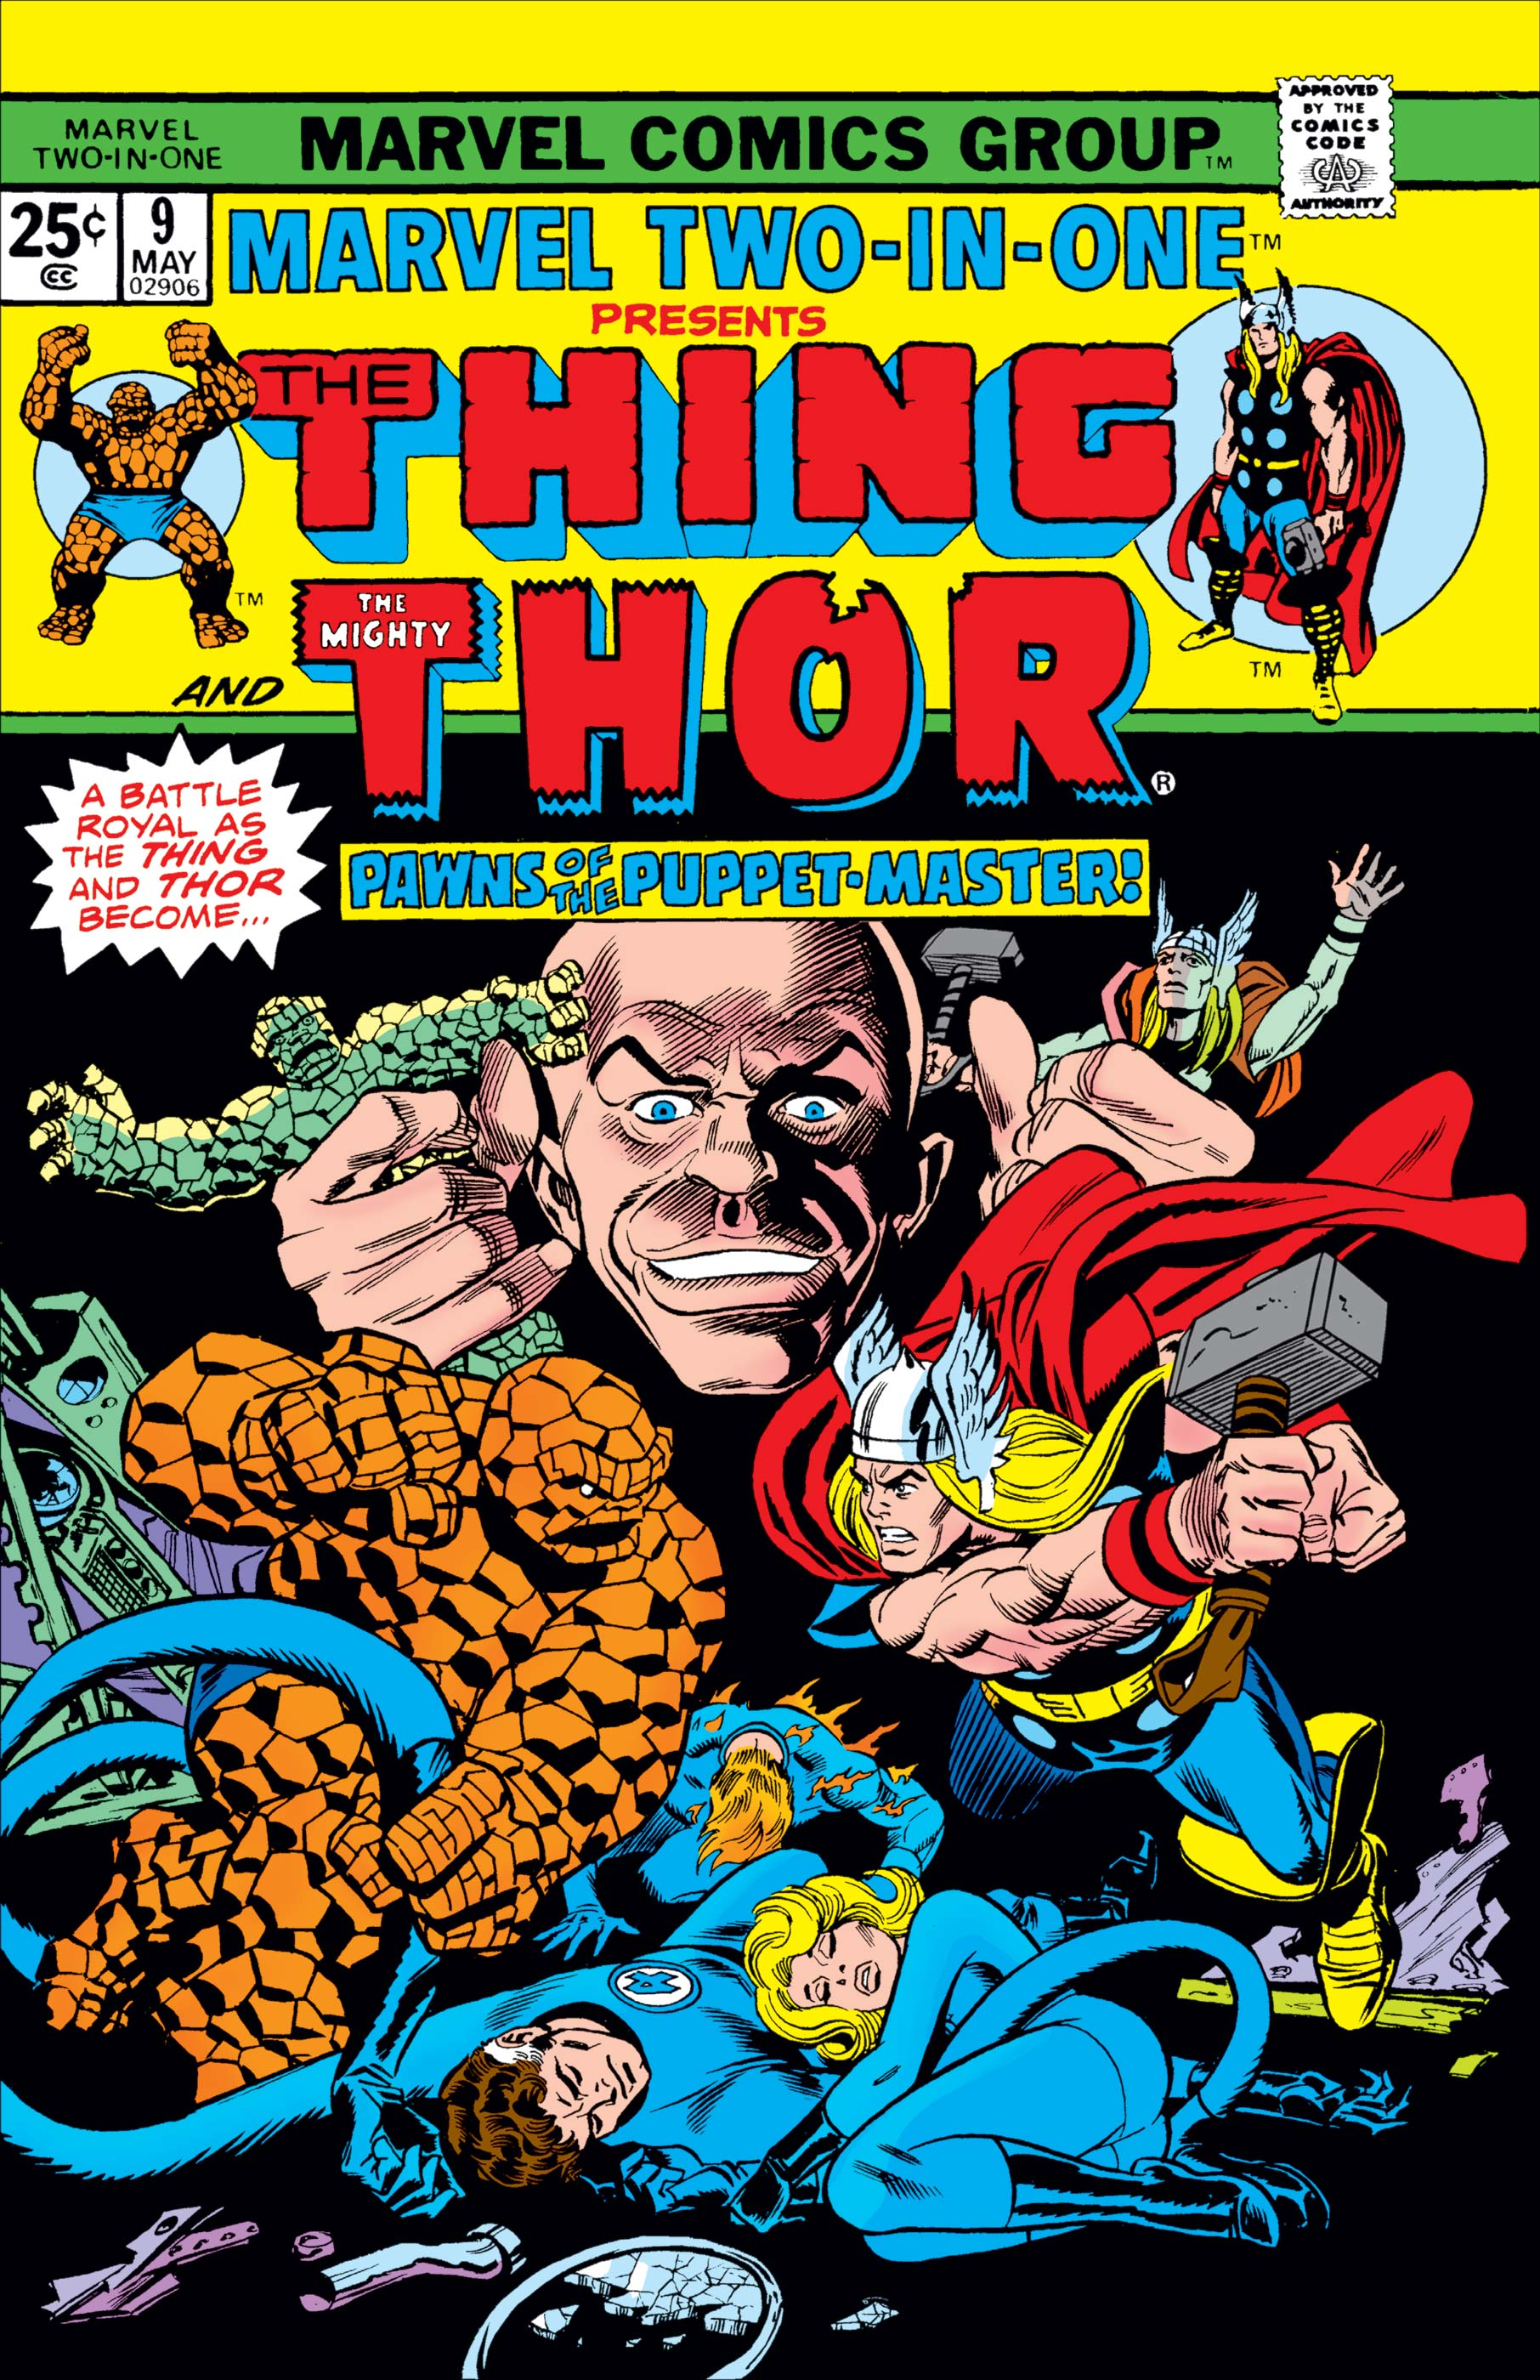 Marvel Two-in-One (1974) #9